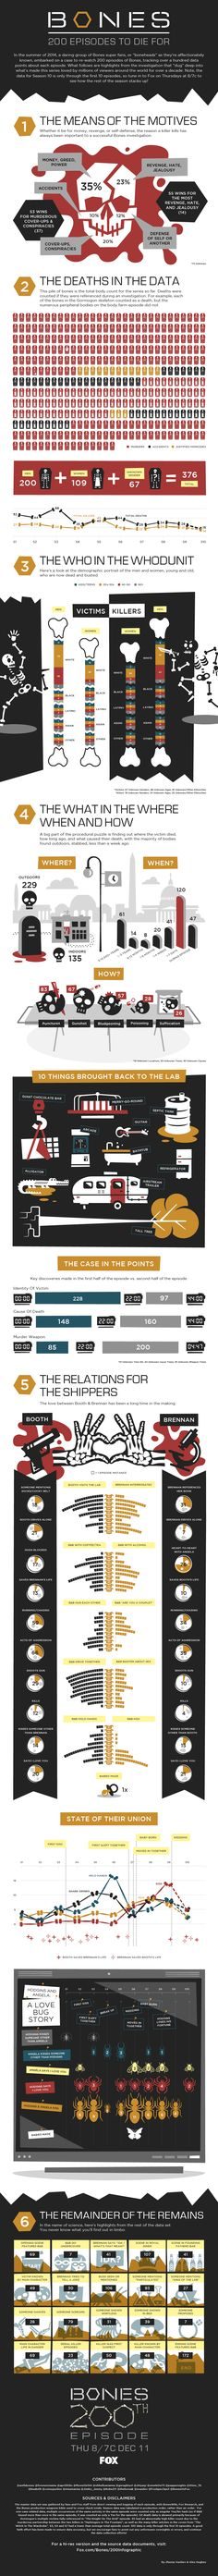 To download a PDF of this infographic, click here! To download the master data set, click here!